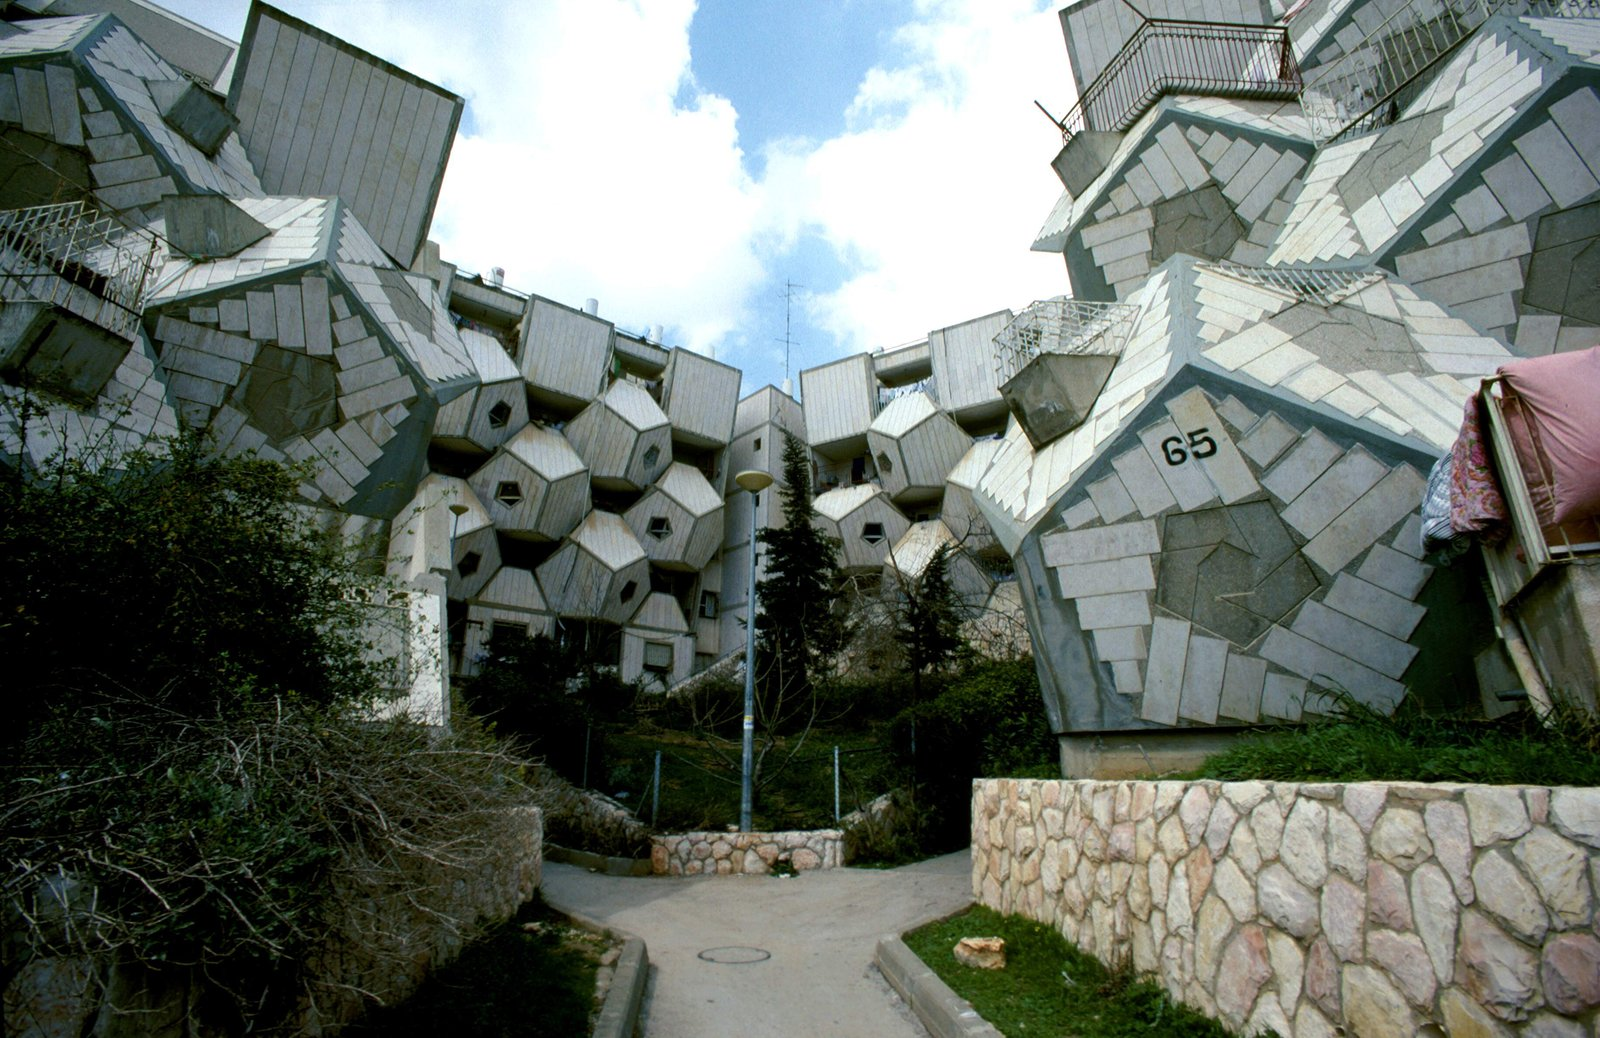 """Polish-born Israeli architect Zvi Hecker spent much of his career exploring cubes and dodecahedrons in his work. One of his most famous structures is the Ramot Polin housing project in Jerusalem erected for an ultra-orthodox population. The hivelike prefabricated building was lauded when it was completed in the 1970s. Over the years, people have adapted the structures and reports say that there isn't a single """"original"""" apartment left in the 700+ units.  Geometric Housing Complex in Jerusalem  by Diana Budds"""